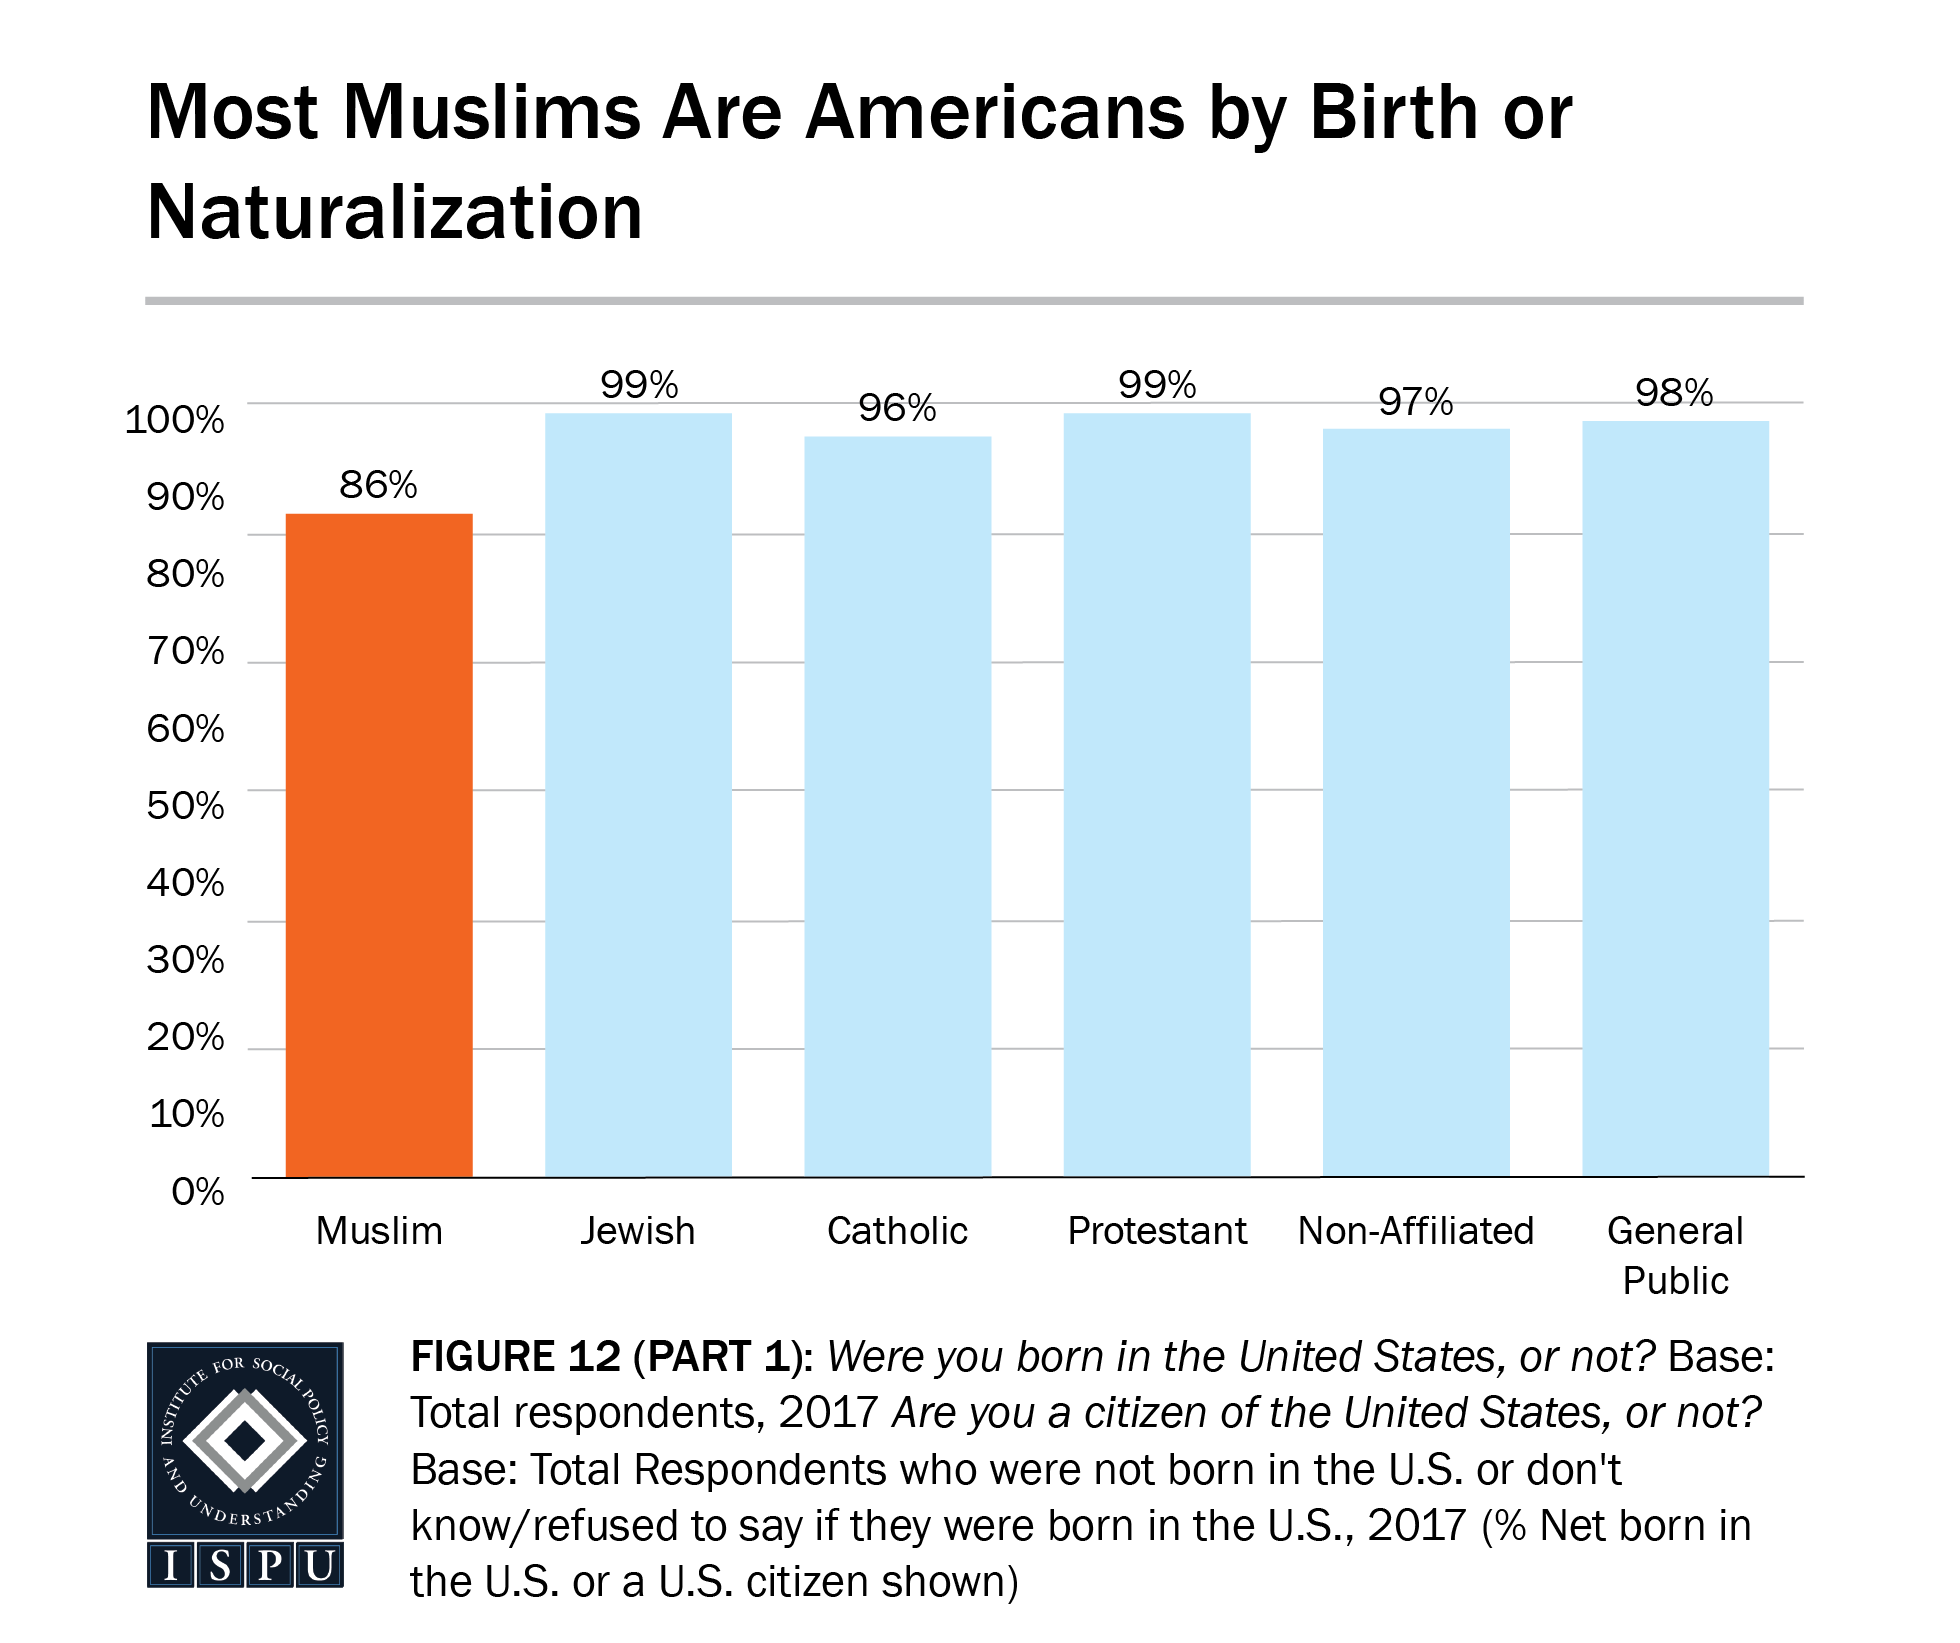 Figure 12, part 1: A bar graph showing that most Muslims (86%) are Americans by birth or naturalization